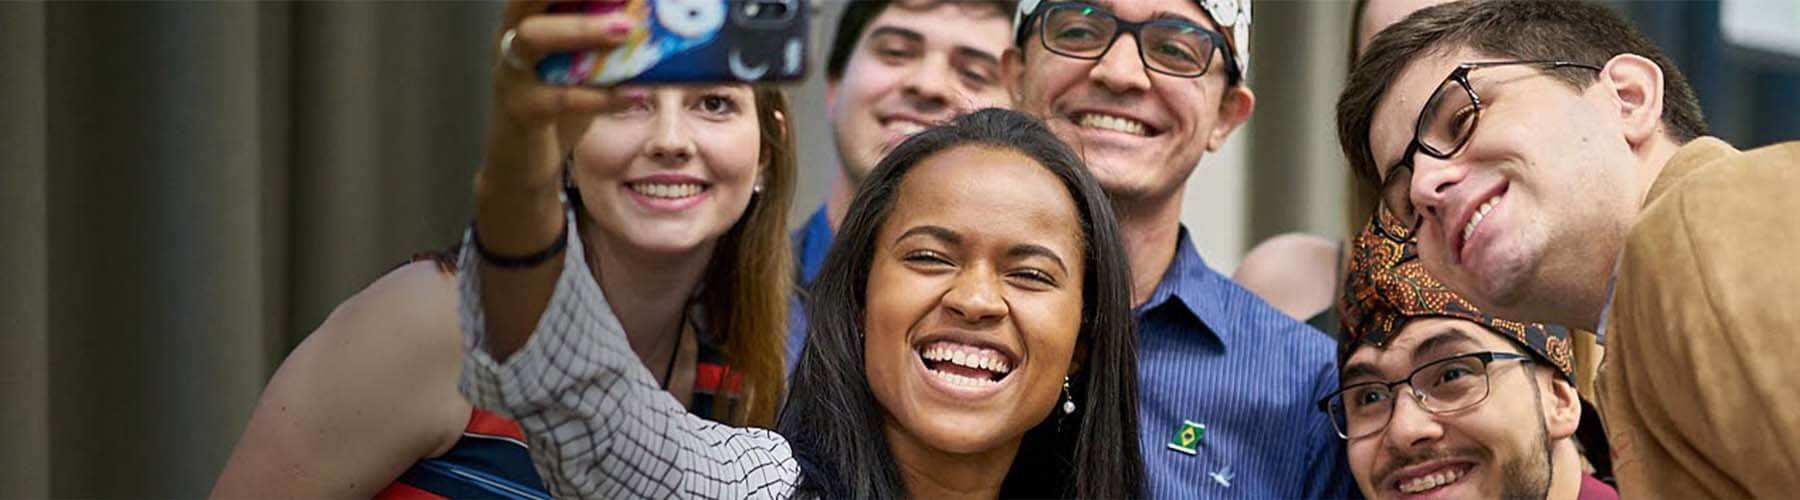 A group of colleagues standing together, smiling and posing for a selfie being taken by a young, black woman standing in center of group.